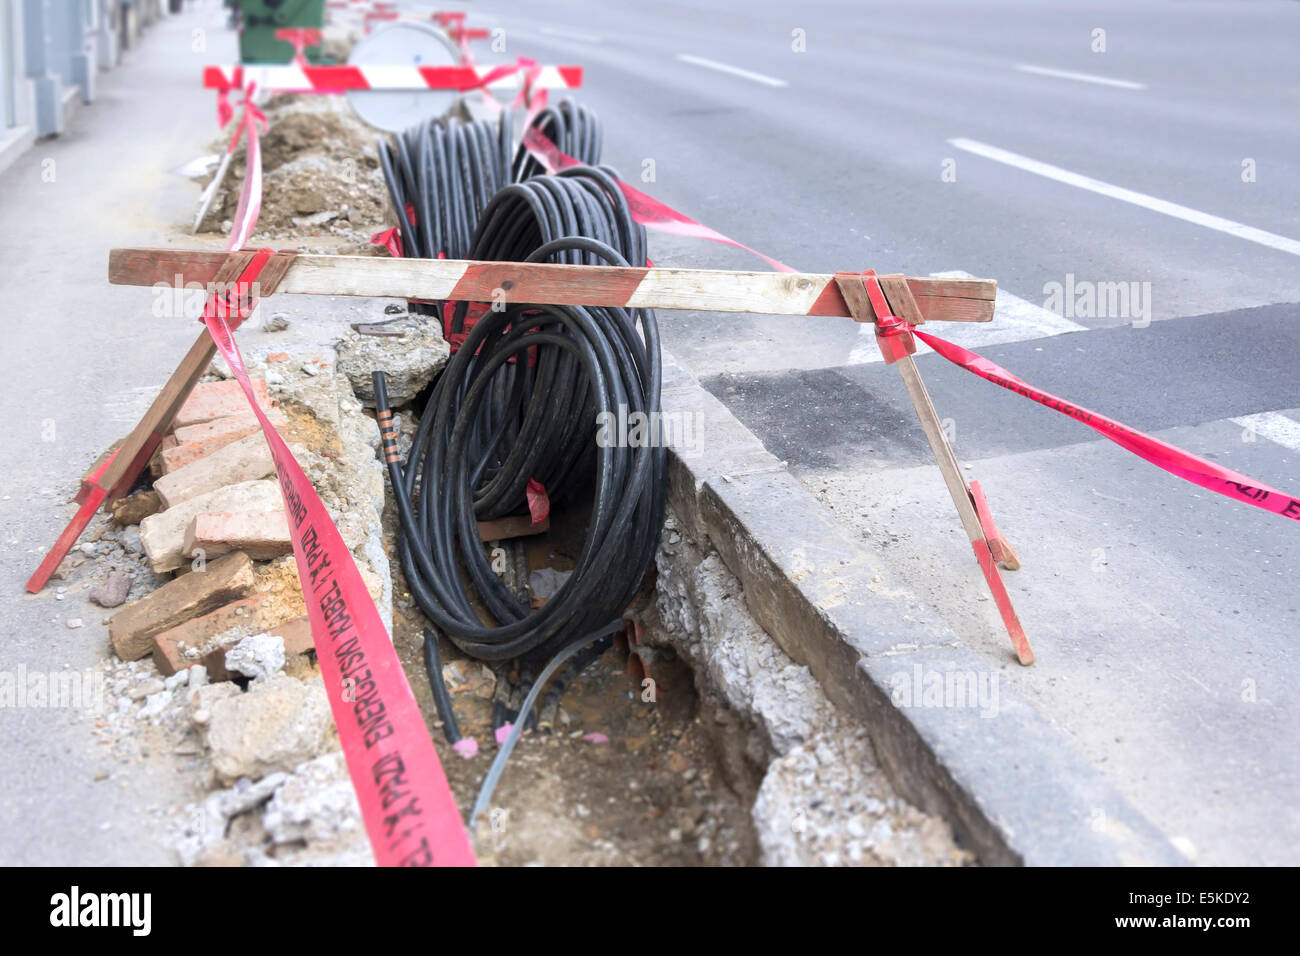 Electrical Conduits Stock Photos Images Surface Wiring Conduit Road Excavation At A Construction Site For The Laying Of Fibre Optic And Electric